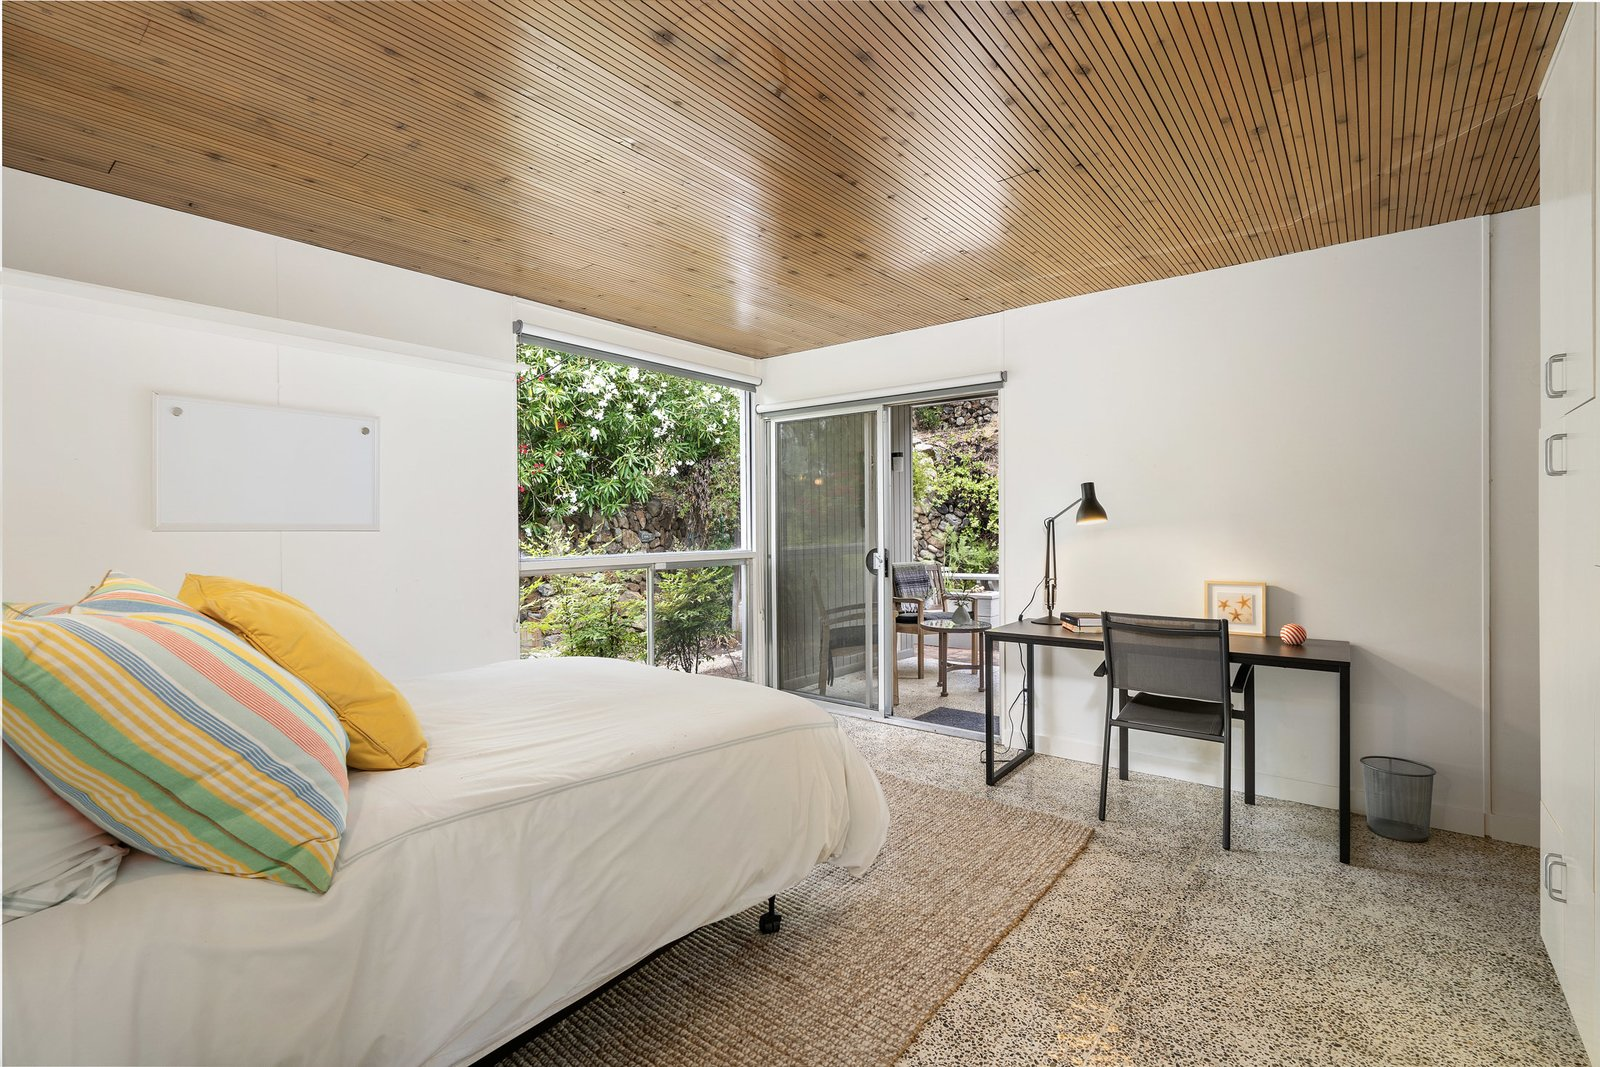 Bedroom, Bed, Chair, and Table Lighting Back inside, each of the two bedrooms offer large windows and private outdoor spaces.  Photo 9 of 12 in A Case Study–Style Home in San Luis Obispo Lists for $870K